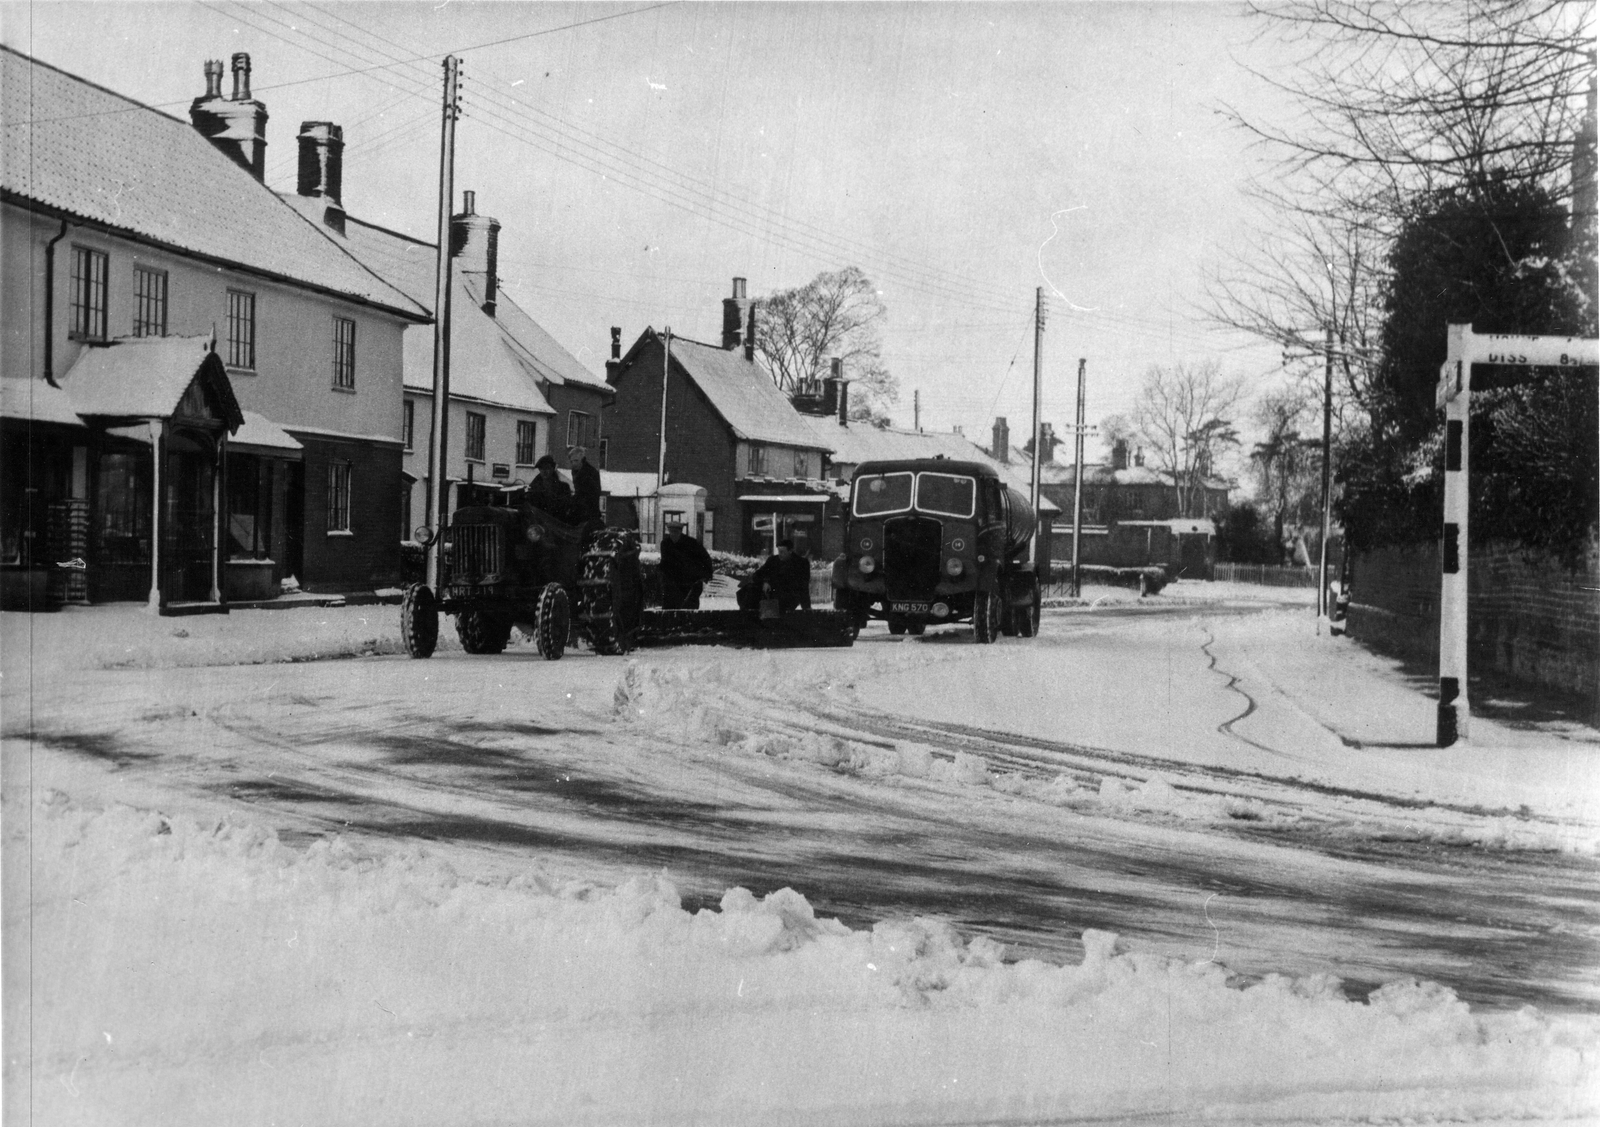 GS98 chrch st snow and lorries.jpg